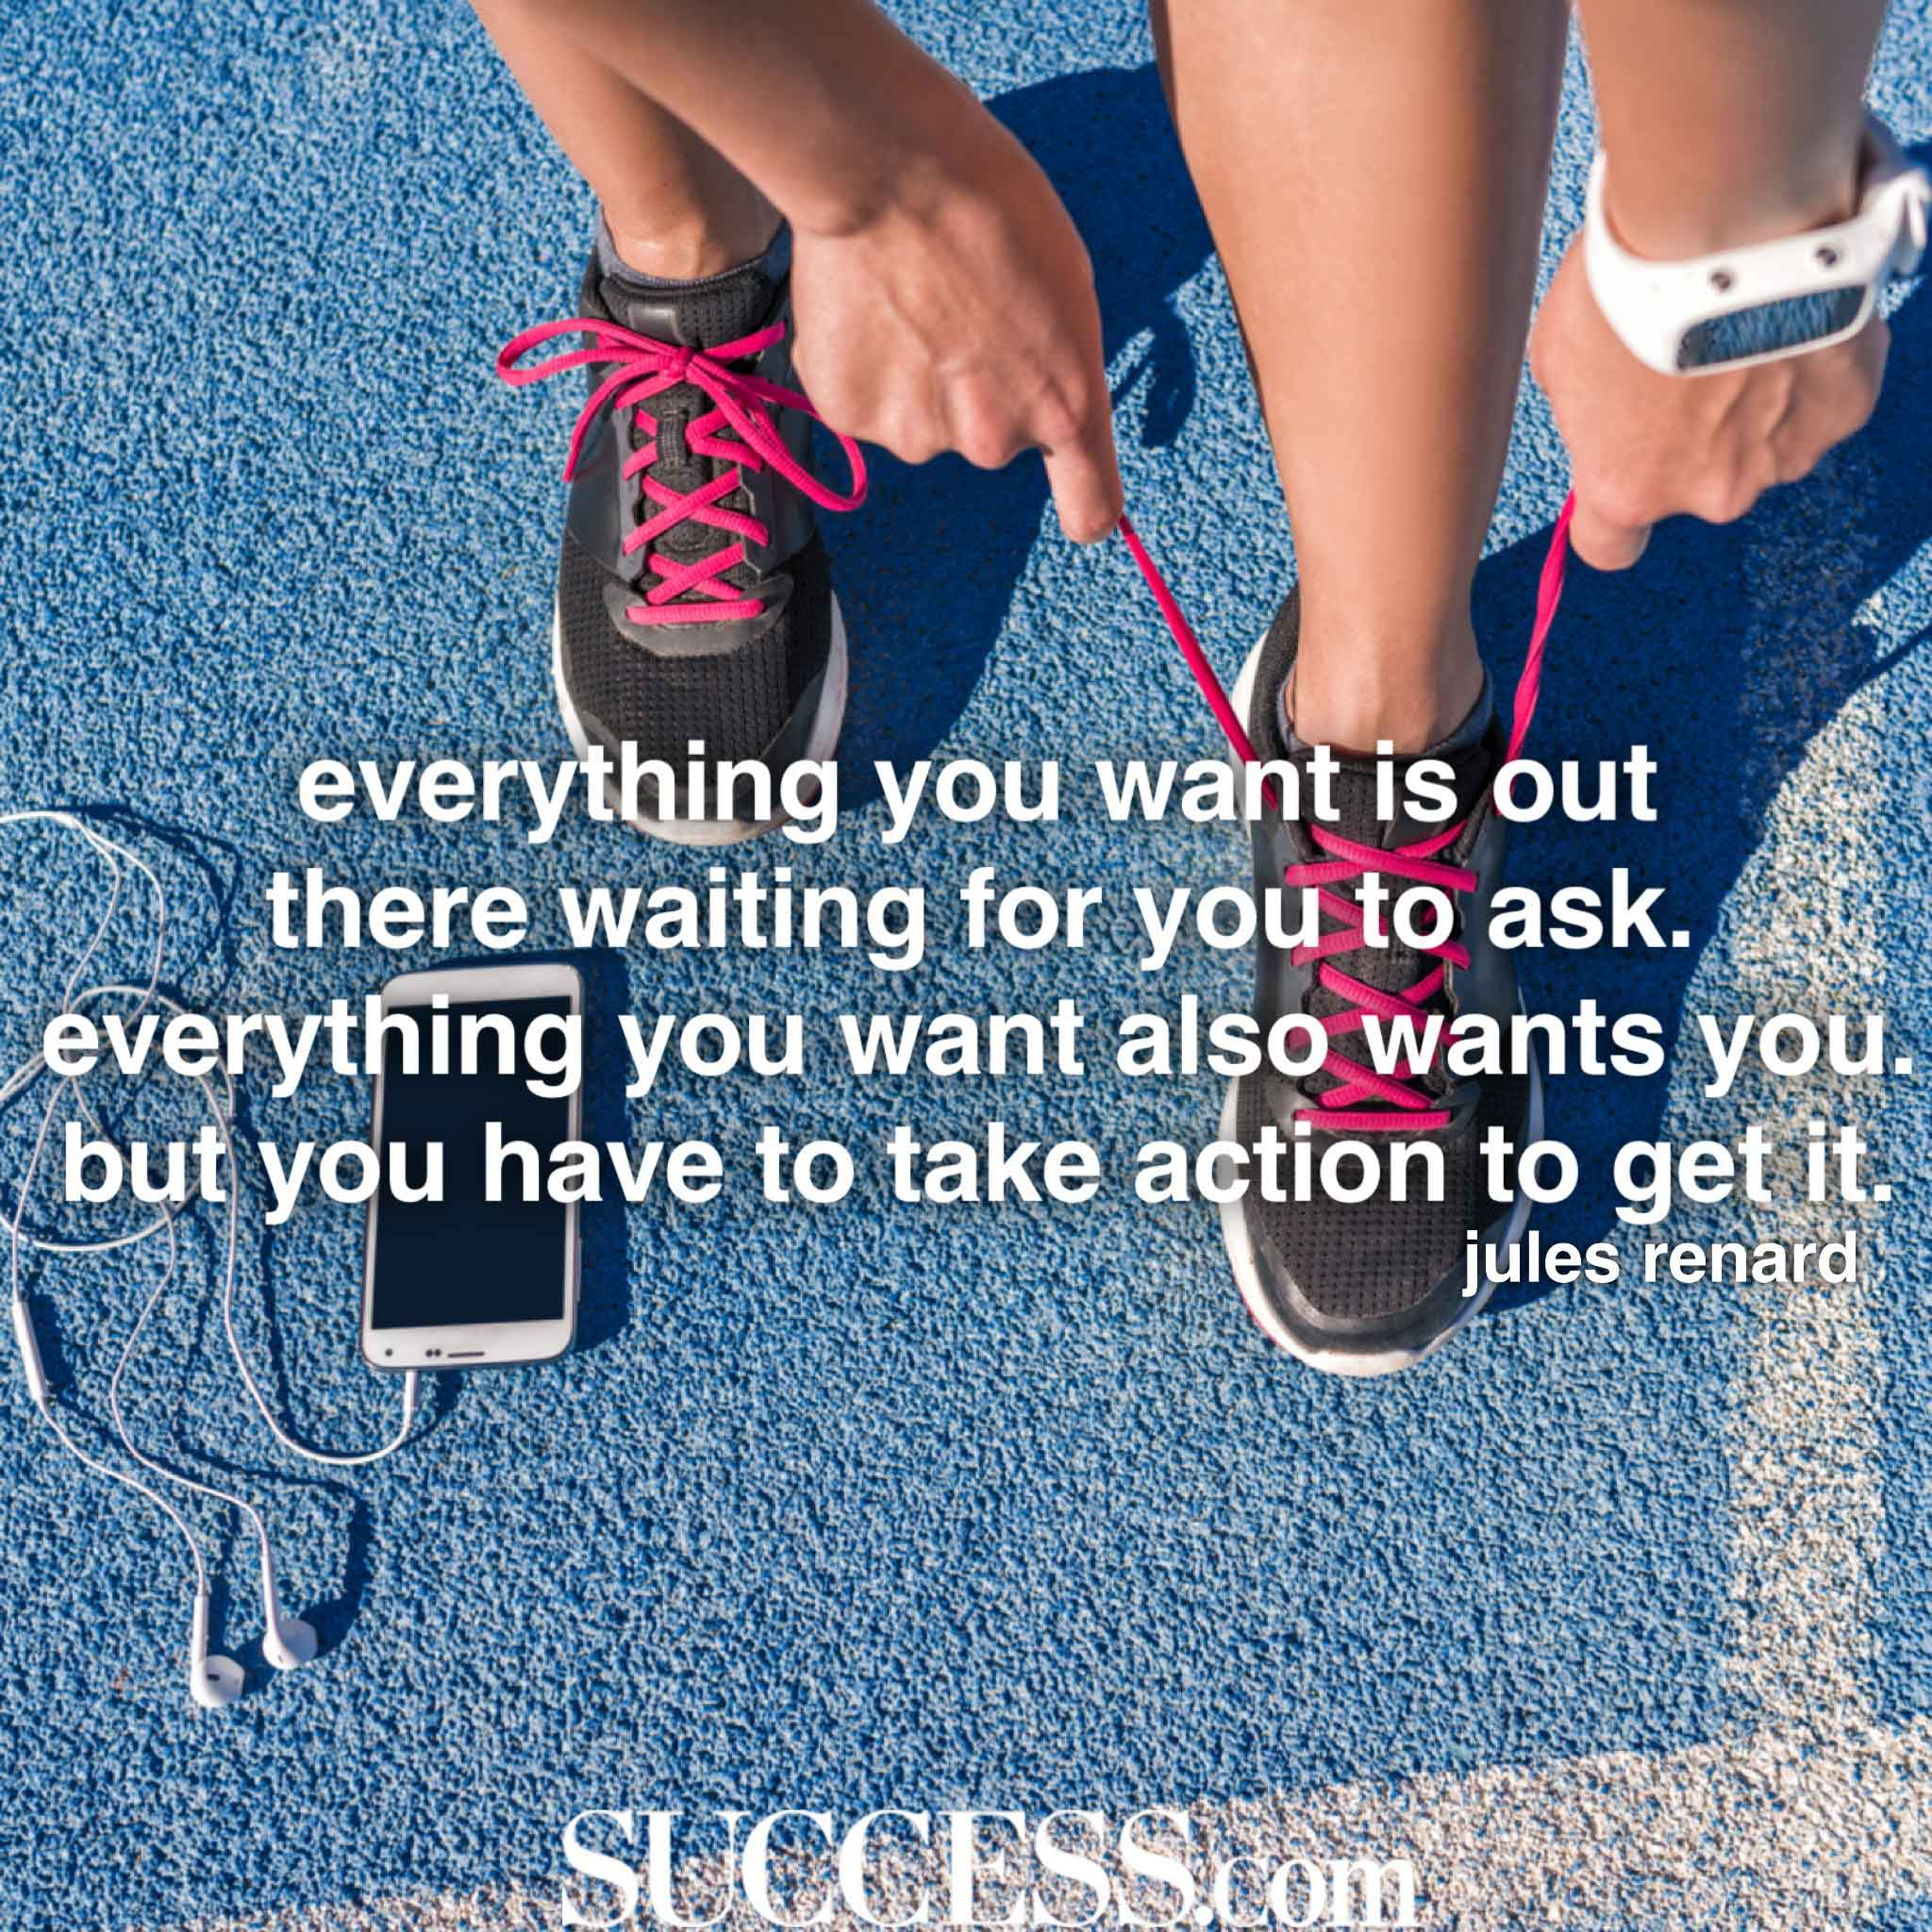 You've Got This! 15 Quotes for Getting What You Want